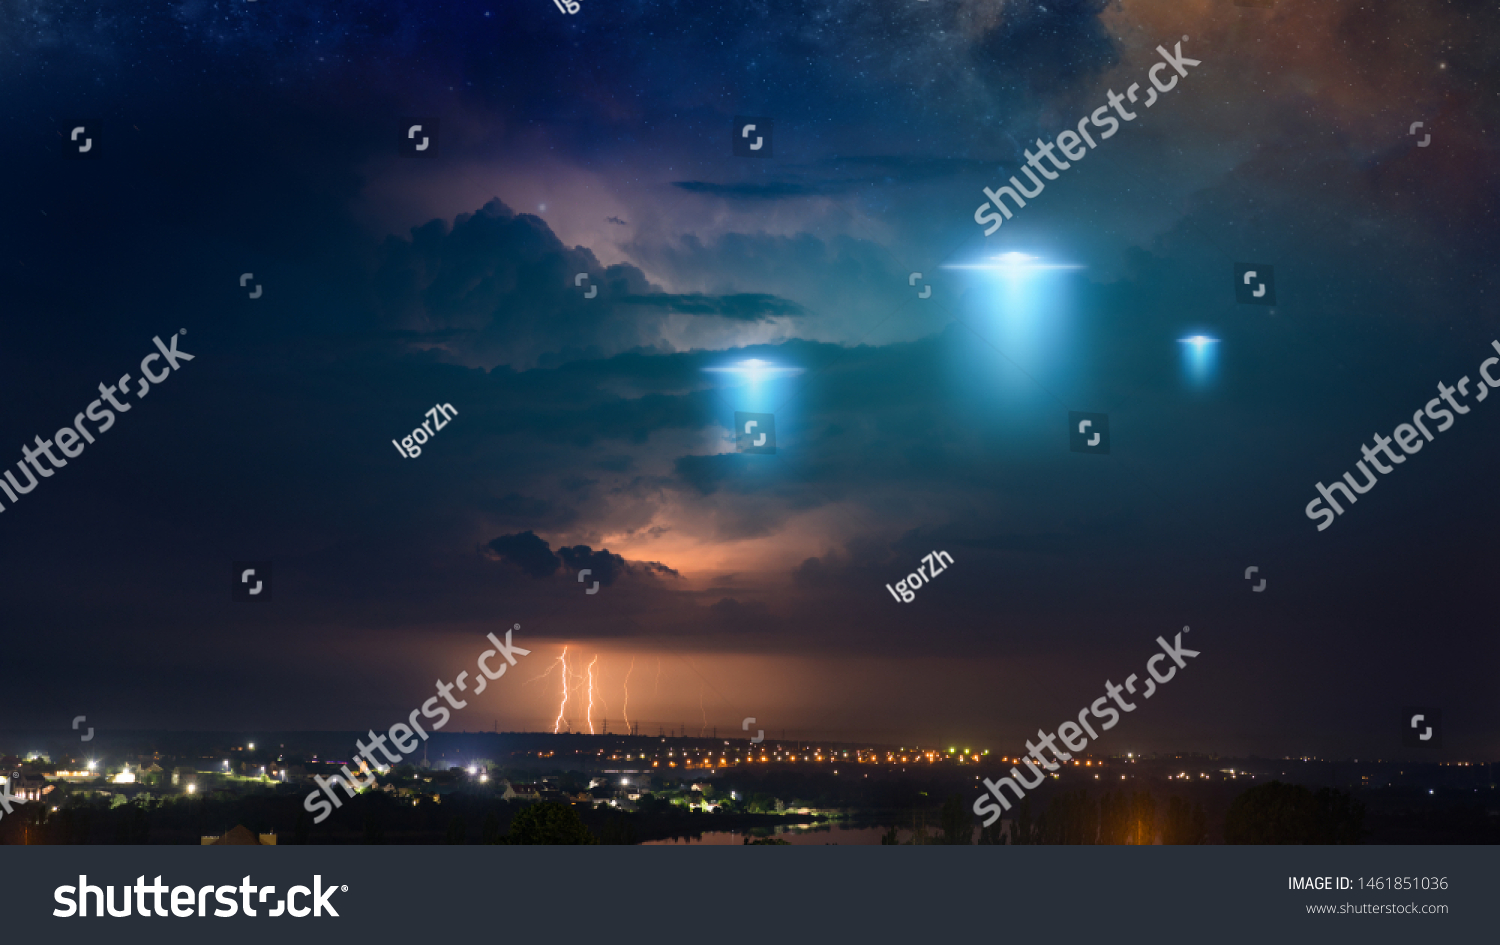 Amazing fantastic background - extraterrestrial aliens spaceship fly above small town, ufo with blue spotlights in dark stormy sky. Elements of this image furnished by NASA #1461851036